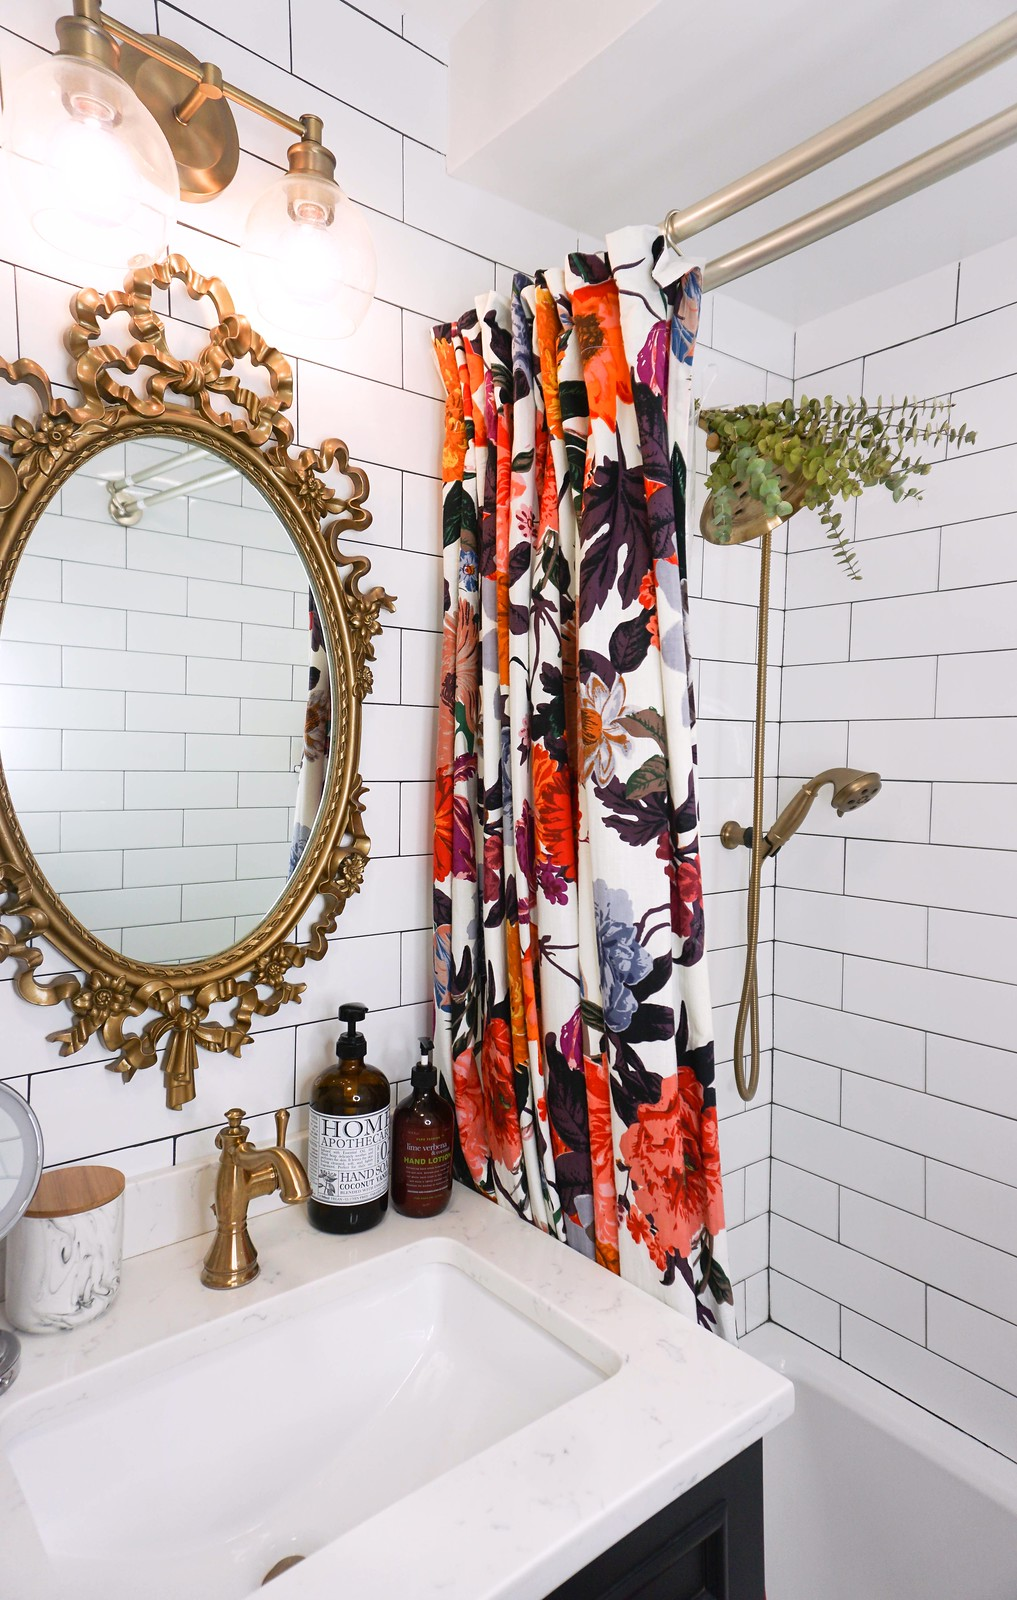 Vintage Gold Mirror in All White Subway Tile Bathroom | Floor to Ceiling White Subway Tile | Gold Bathroom Hardware | Anthropologie Floral Shower Curtain